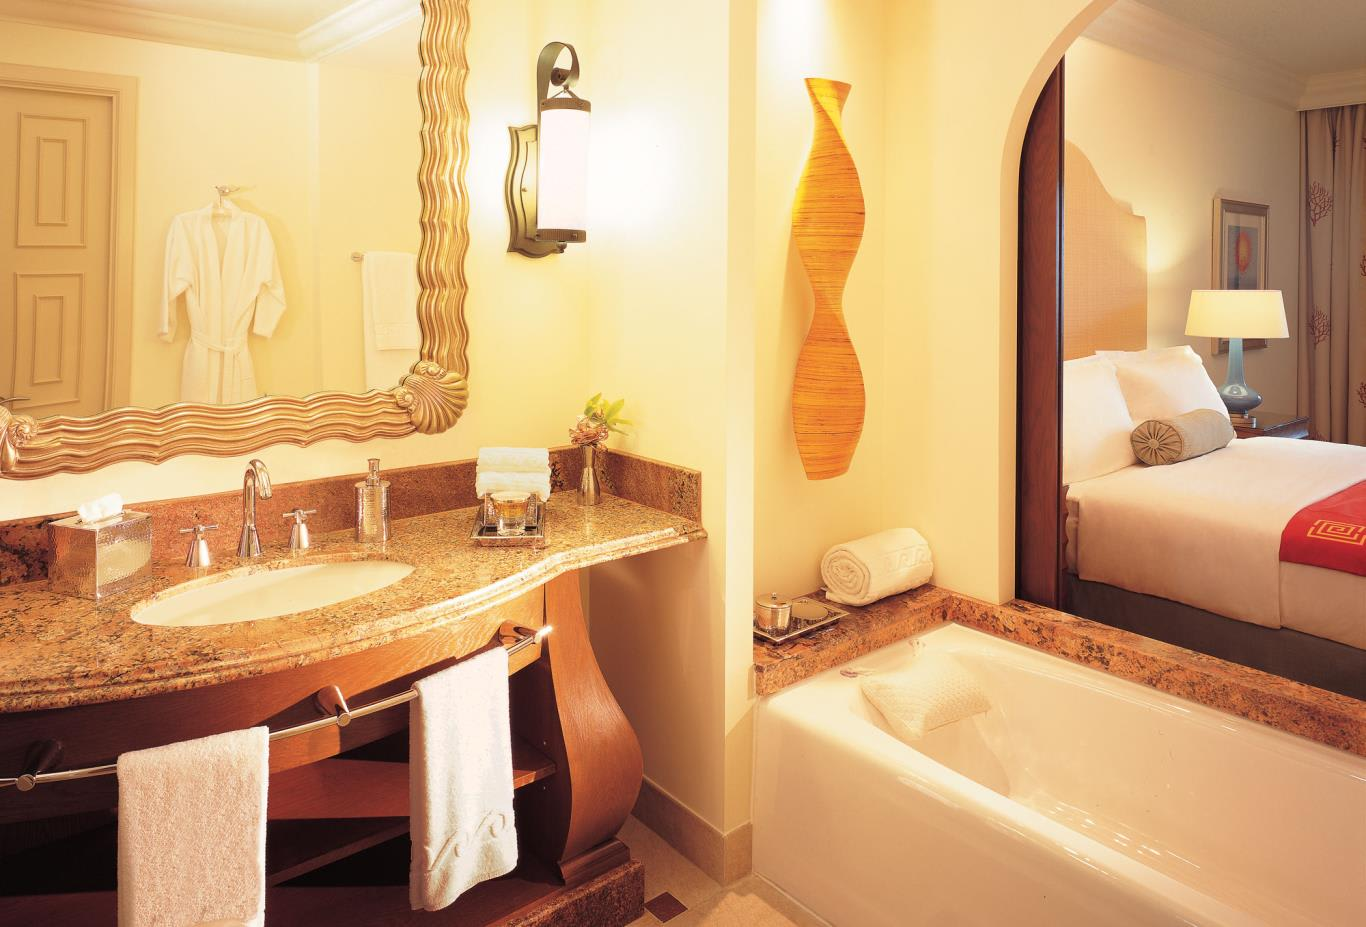 Deluxe-room-bathroom